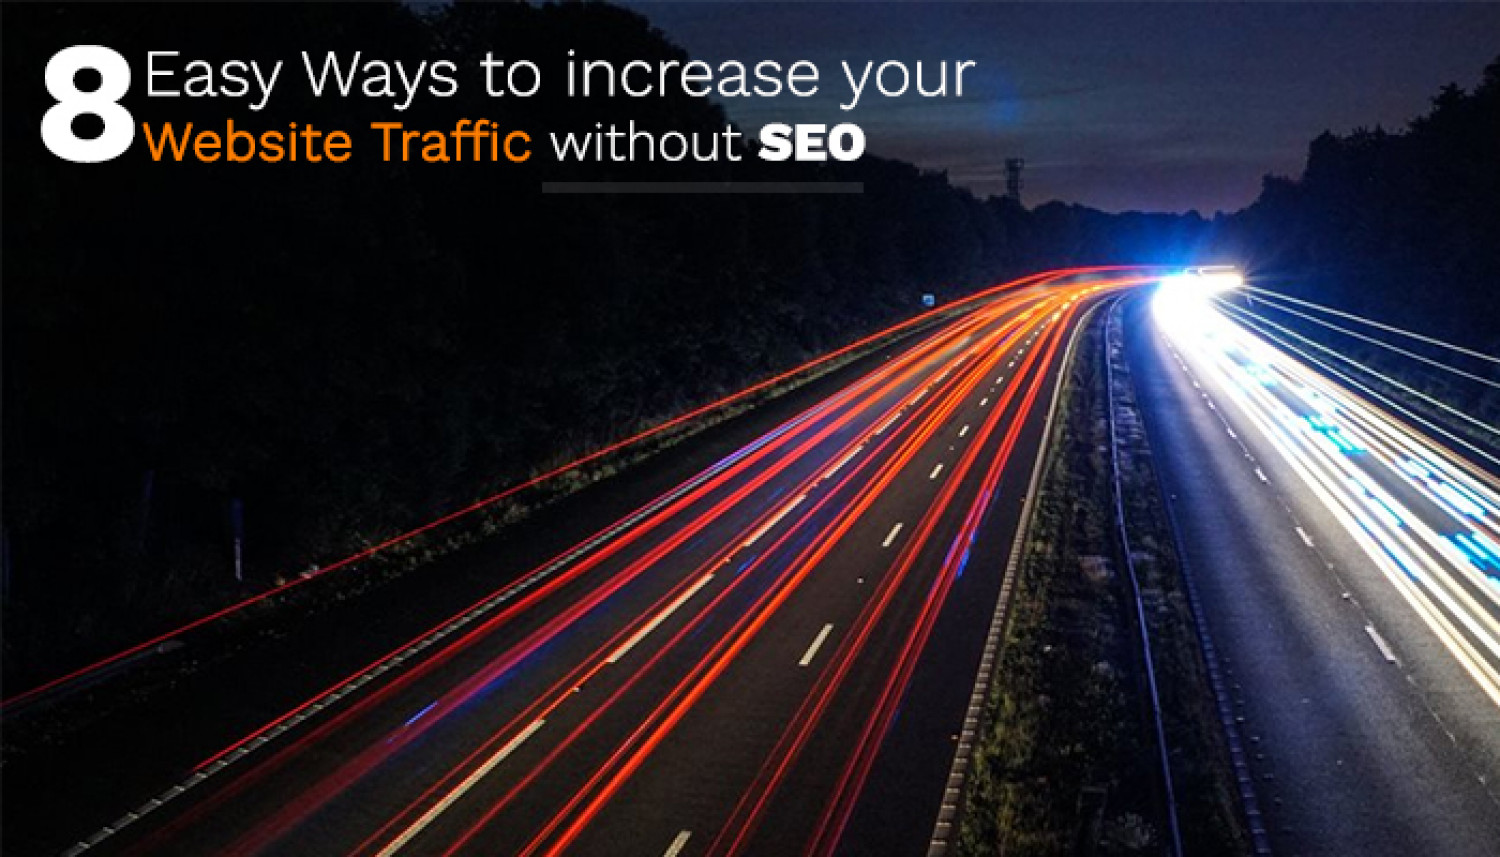 8 Easy Ways To Increase Your Website Traffic Without SEO Infographic